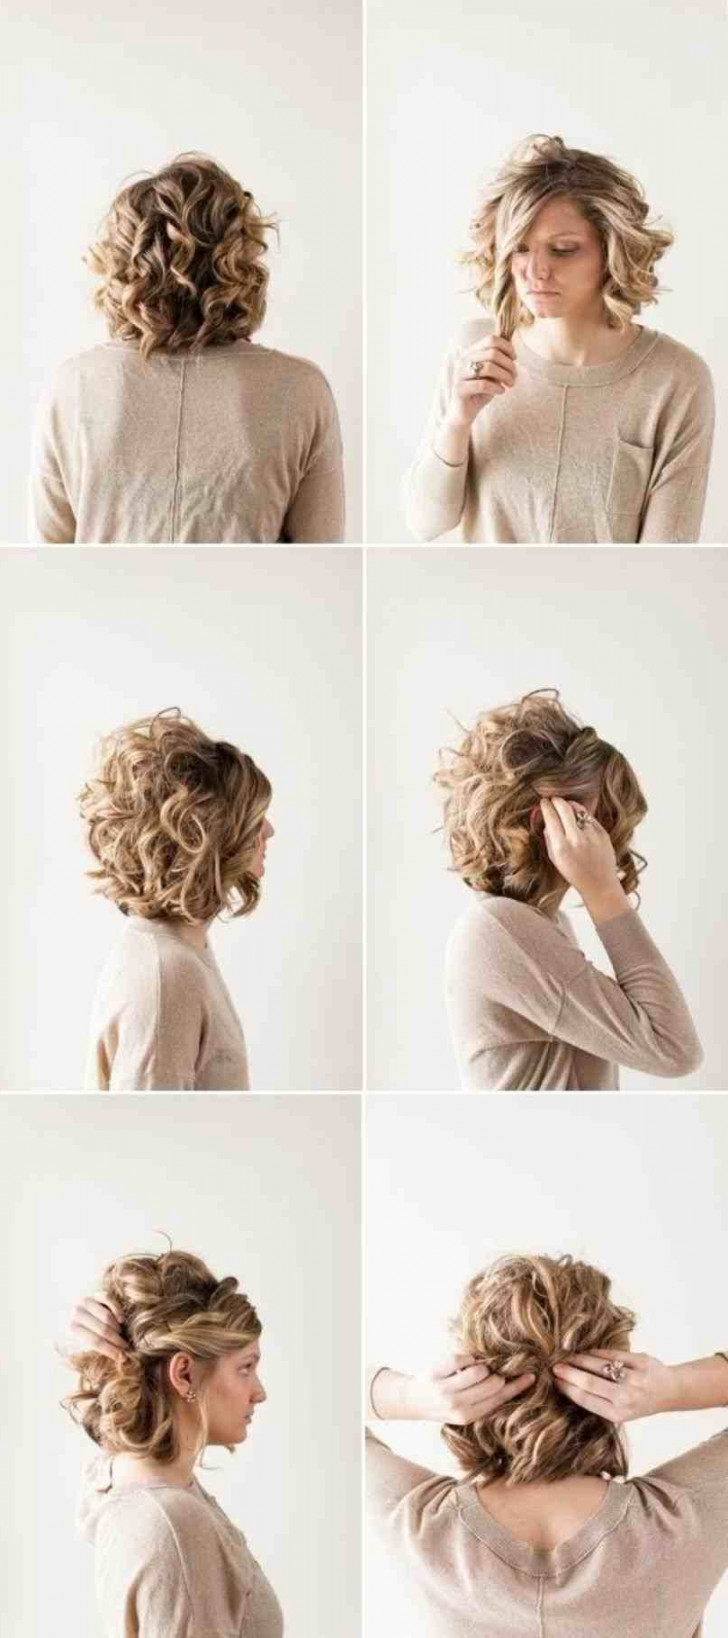 By Easy Easy Homecoming Updos For Short Hair Prom Hairstyles U Intended For Homecoming Updo Hairstyles For Short Hair (View 2 of 15)